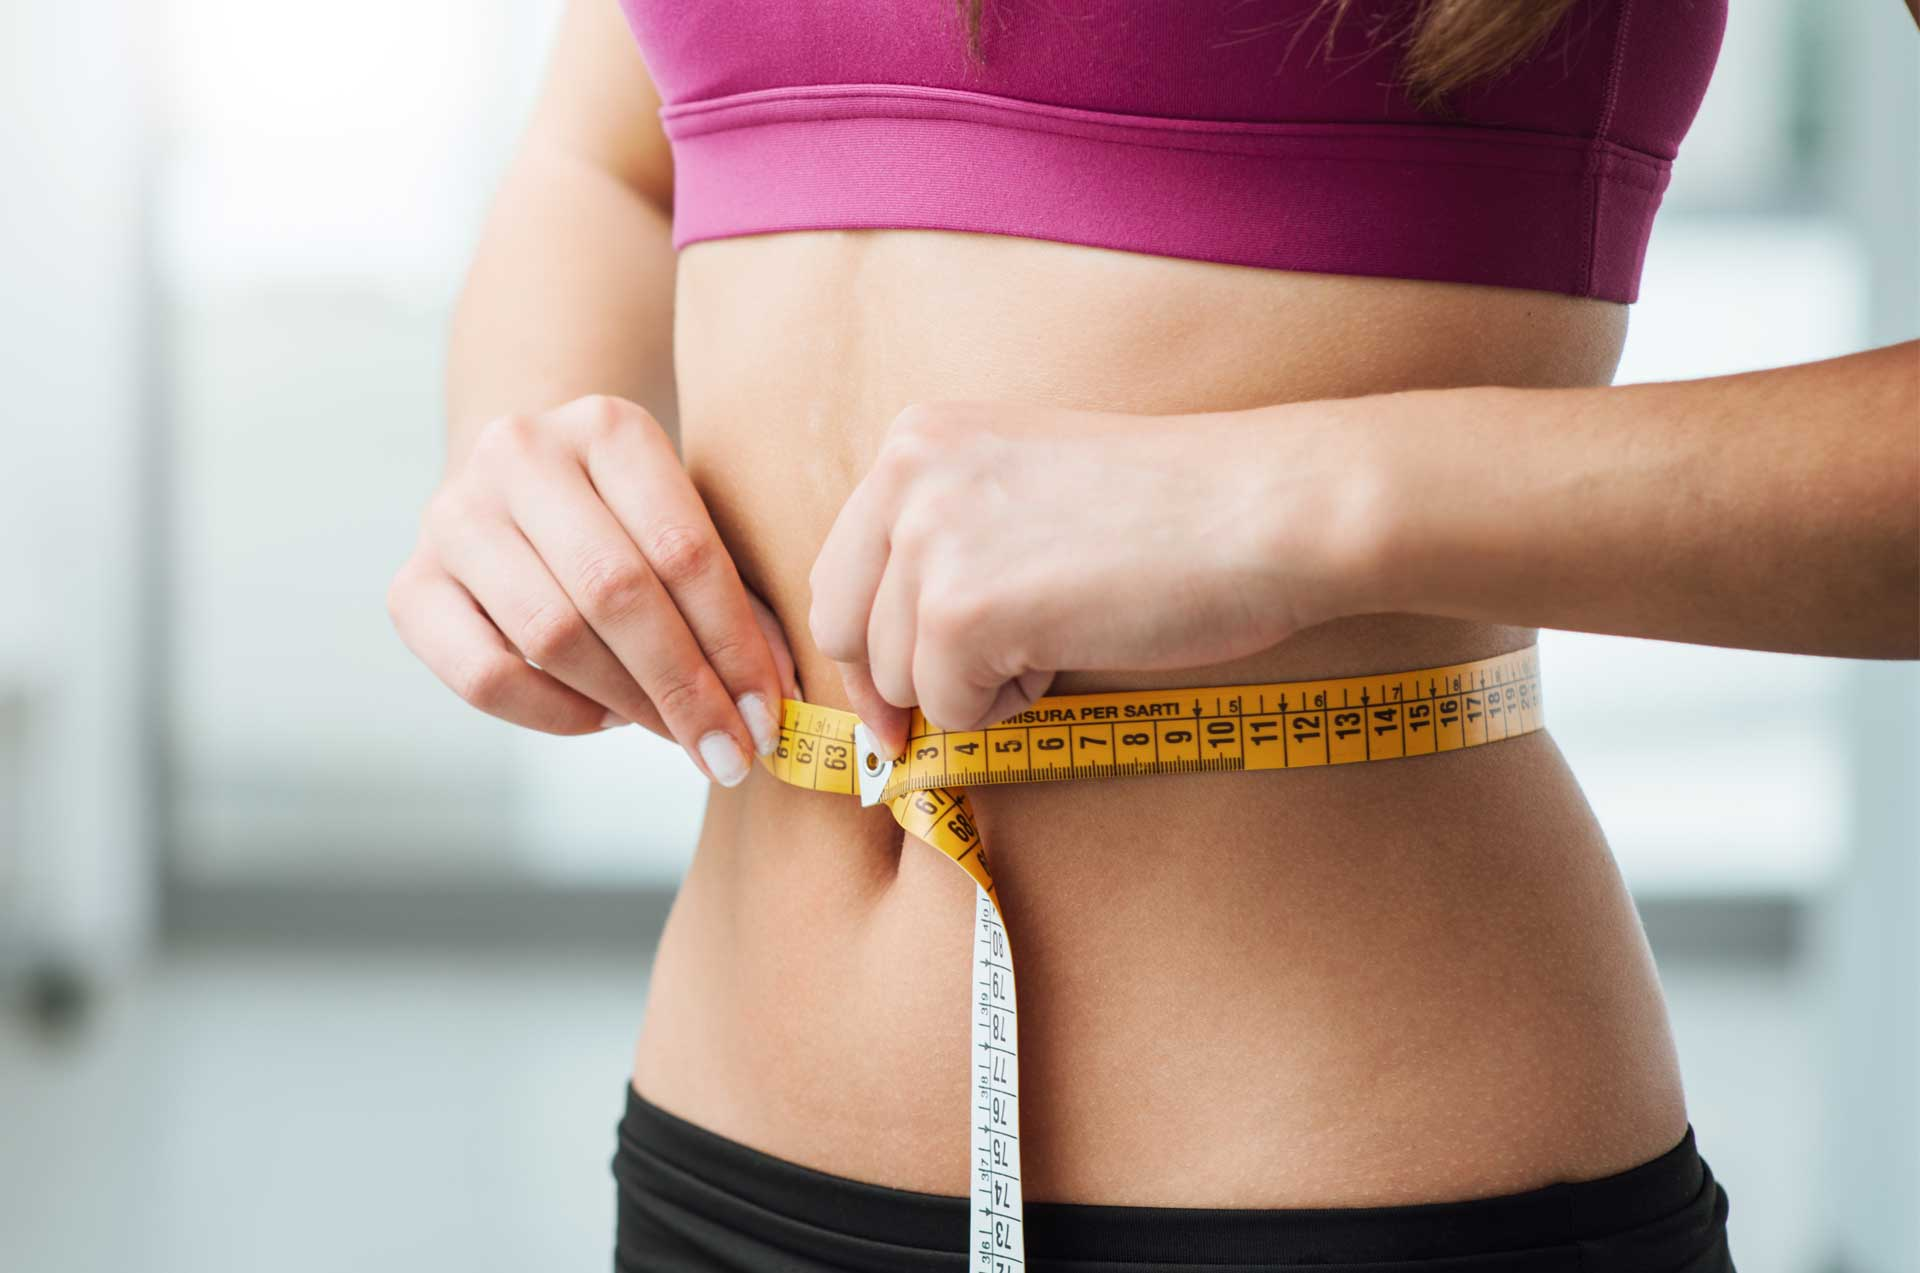 The Venus Factor 2.0 Weight Loss